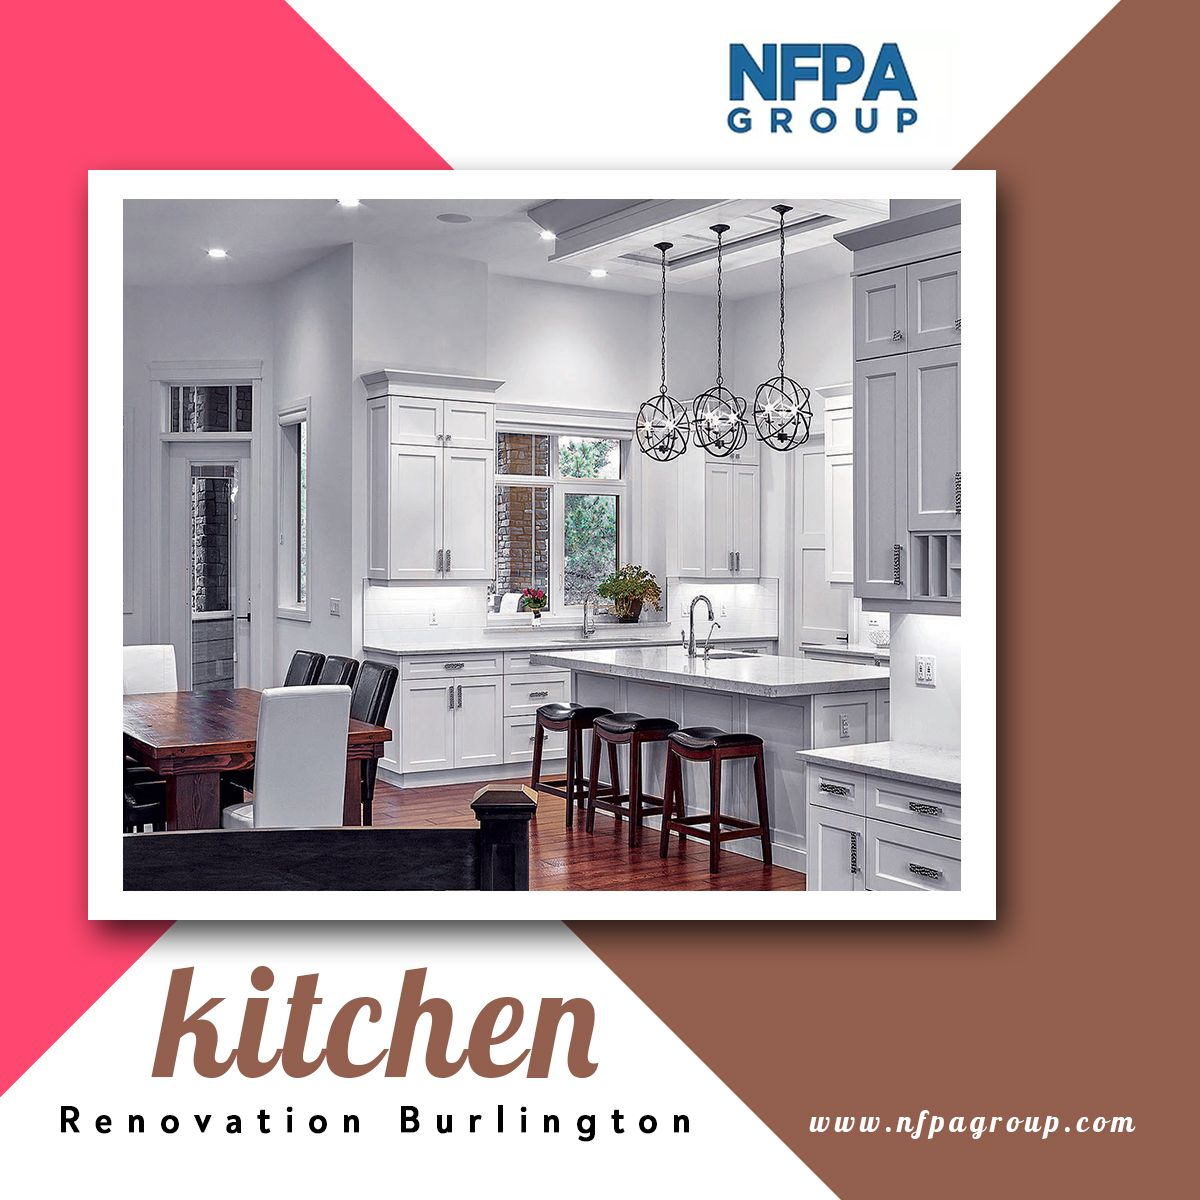 Nfpa Construction Group Offer Kitchen Renovations In Burlington